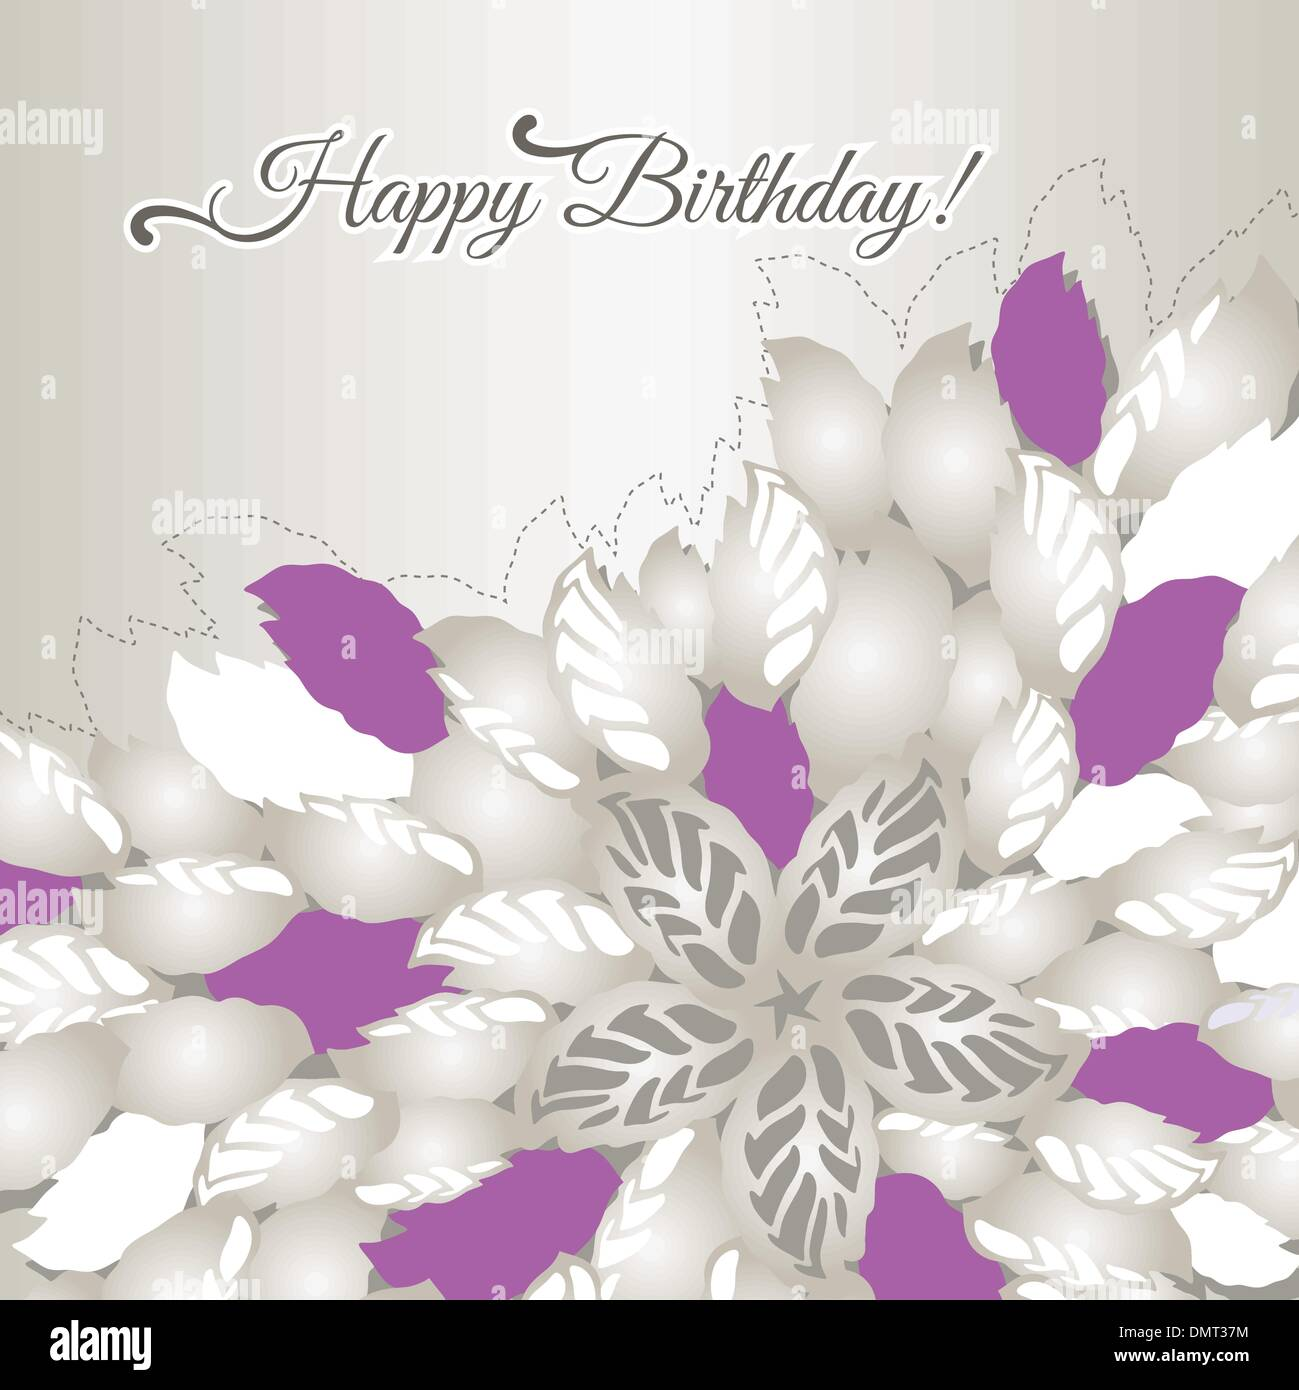 happy birthday card with pink flowers and leaves stock vector - Happy Birthday Cards Flowers